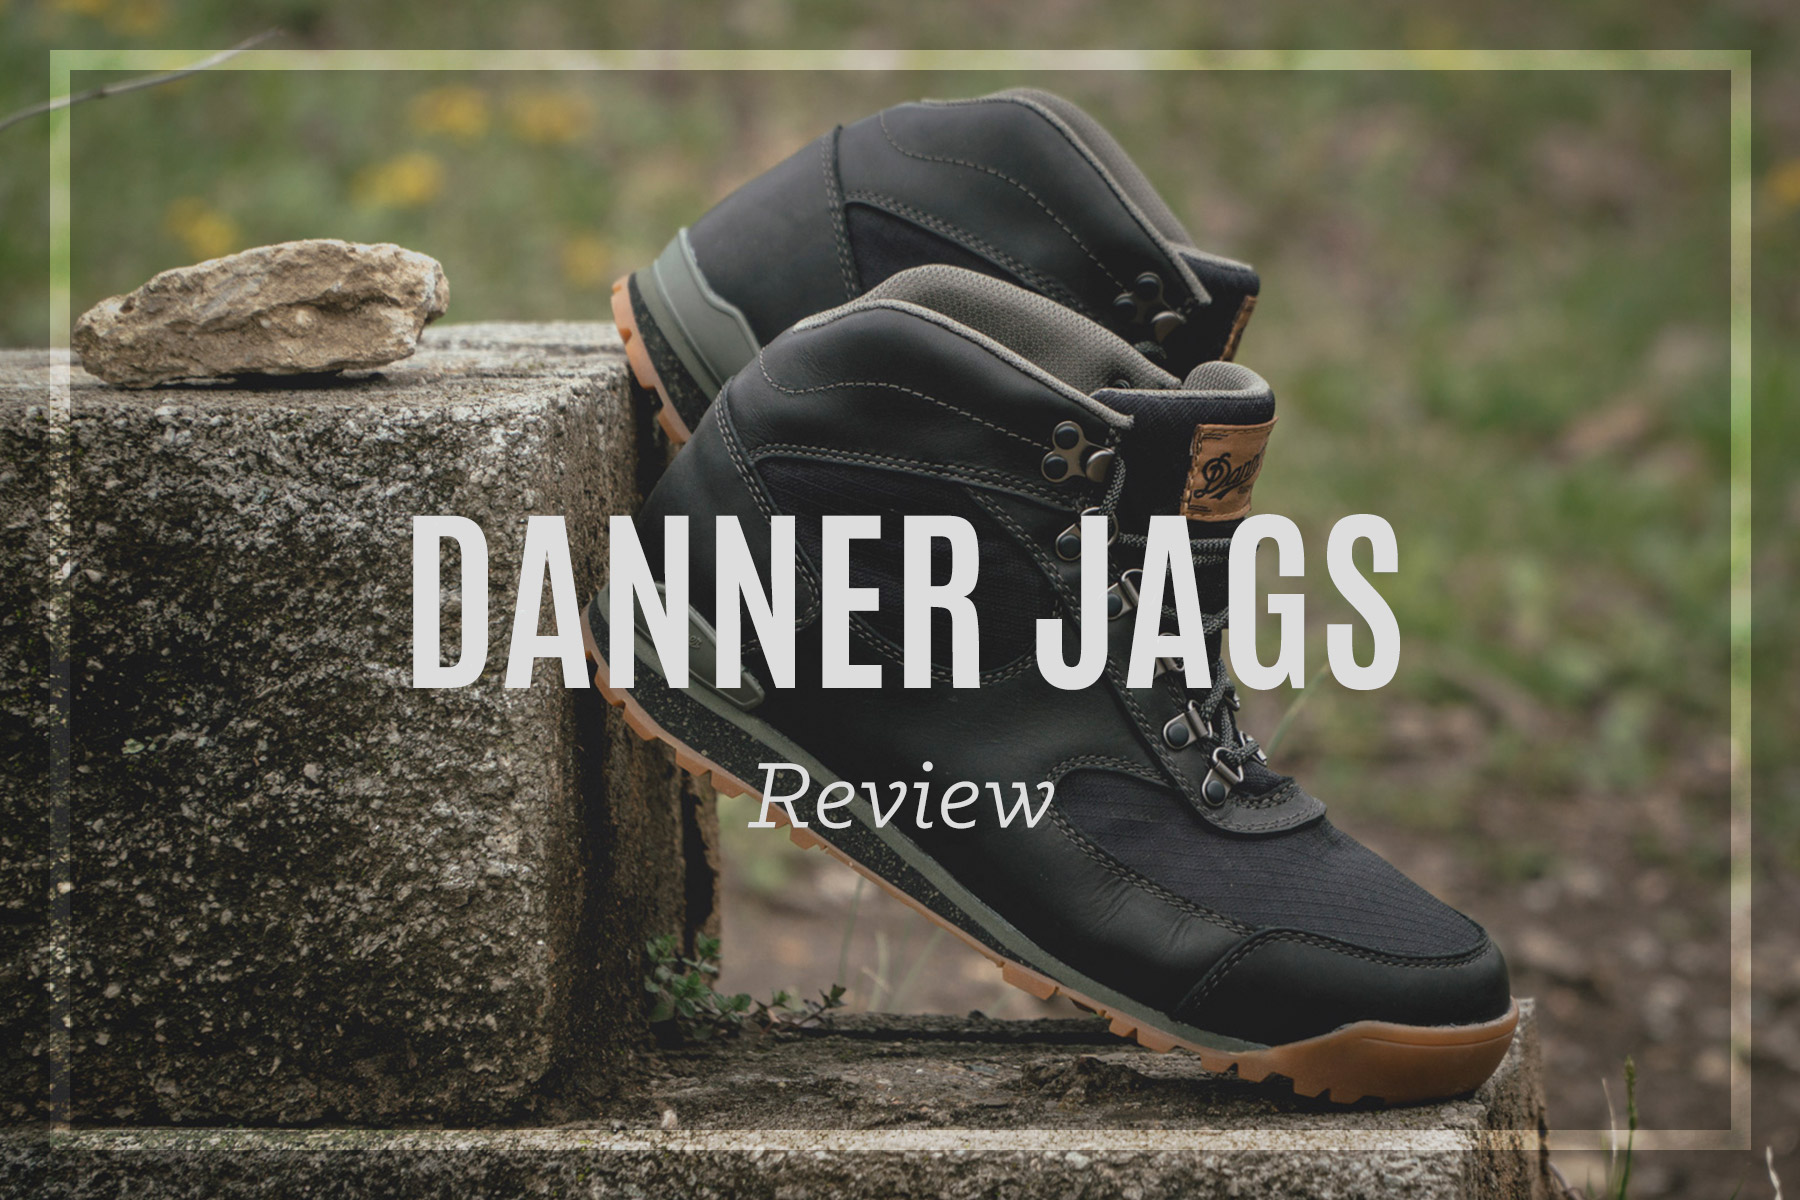 426b75ad753 Danner Jags Review • Classic meets Casual Hiking Boot